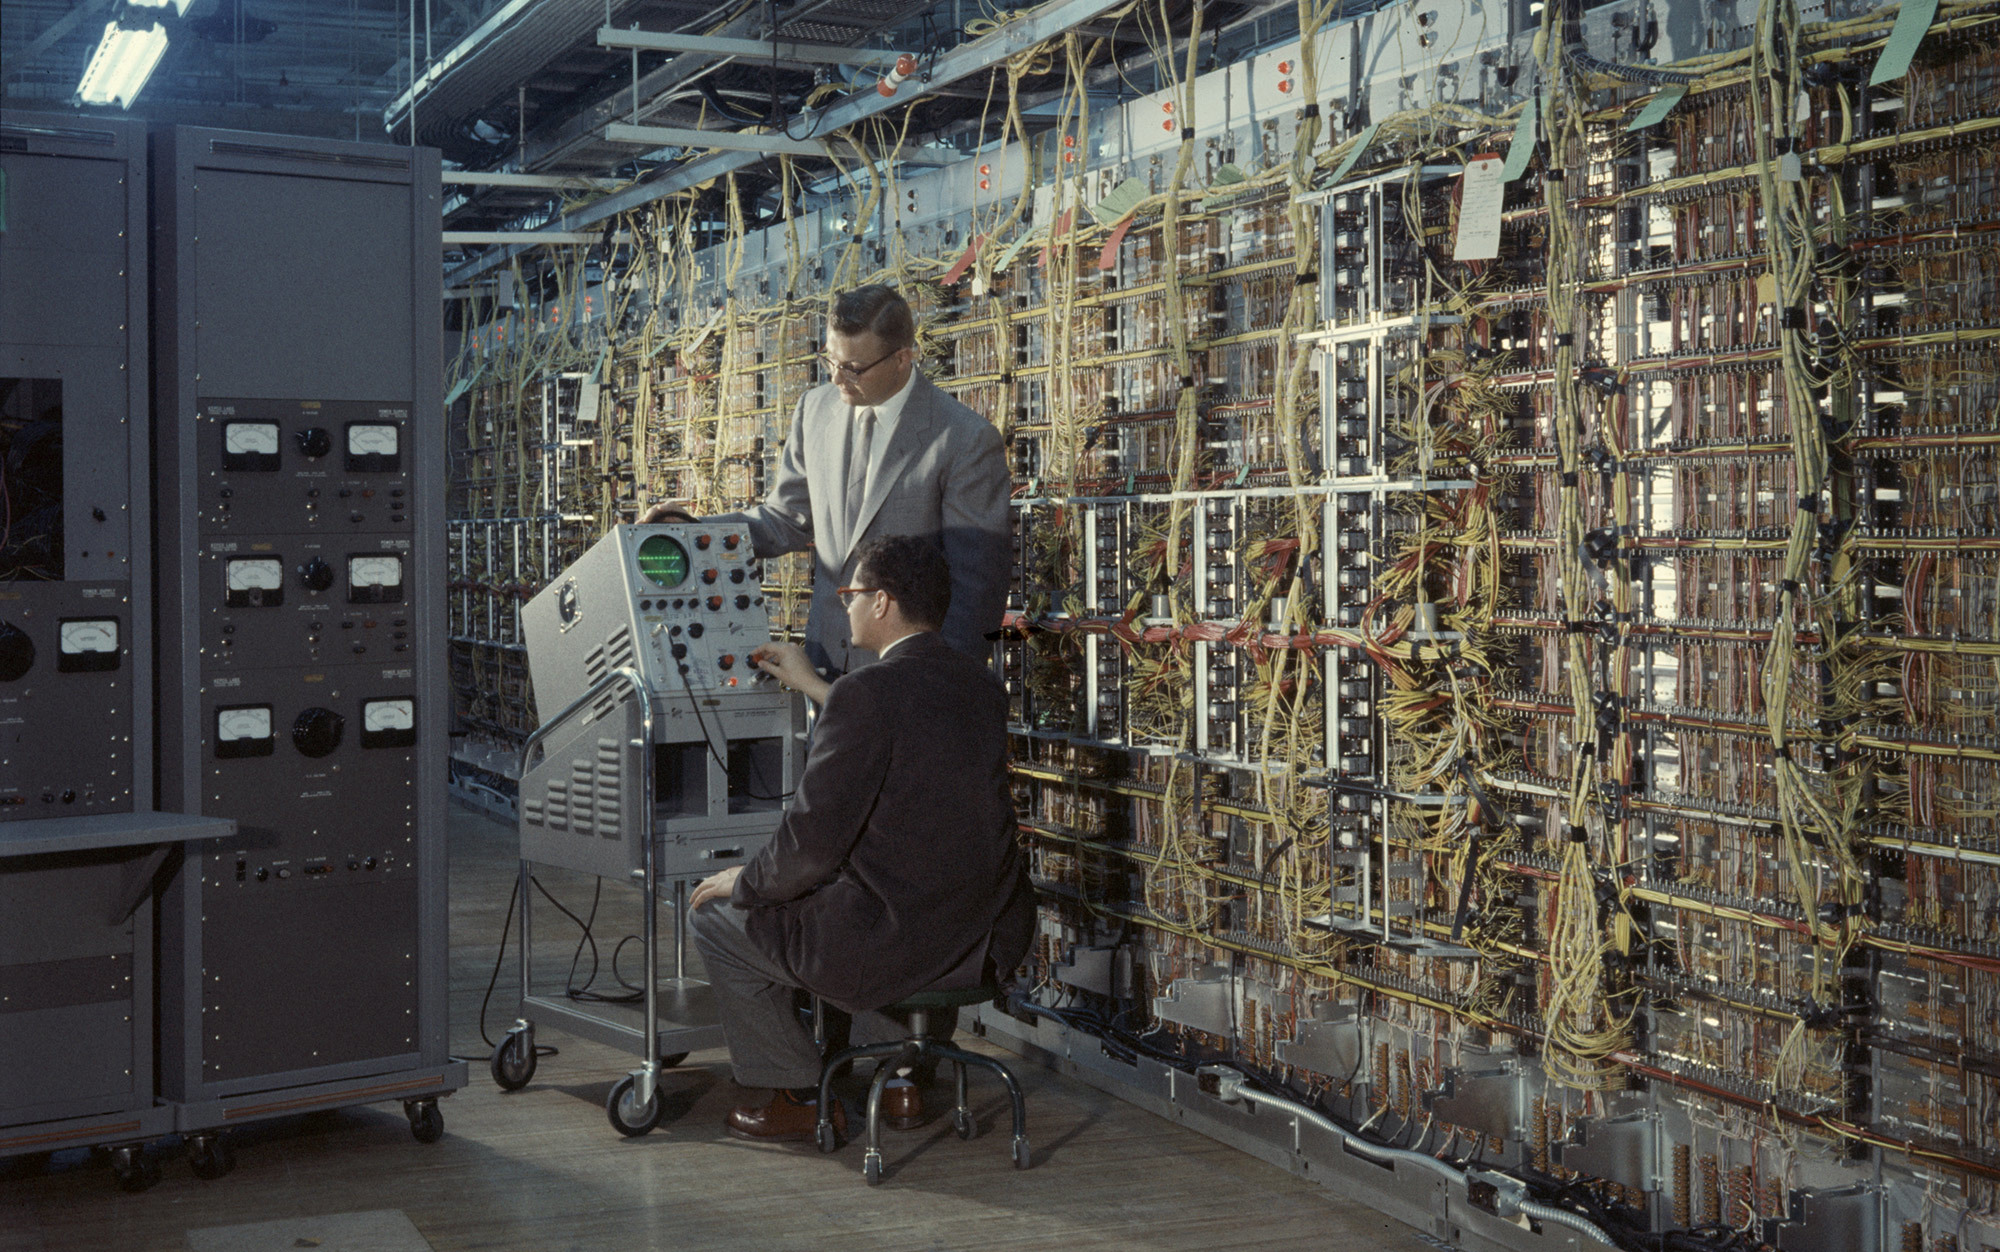 how nuclear fears helped inspire creation of the internet